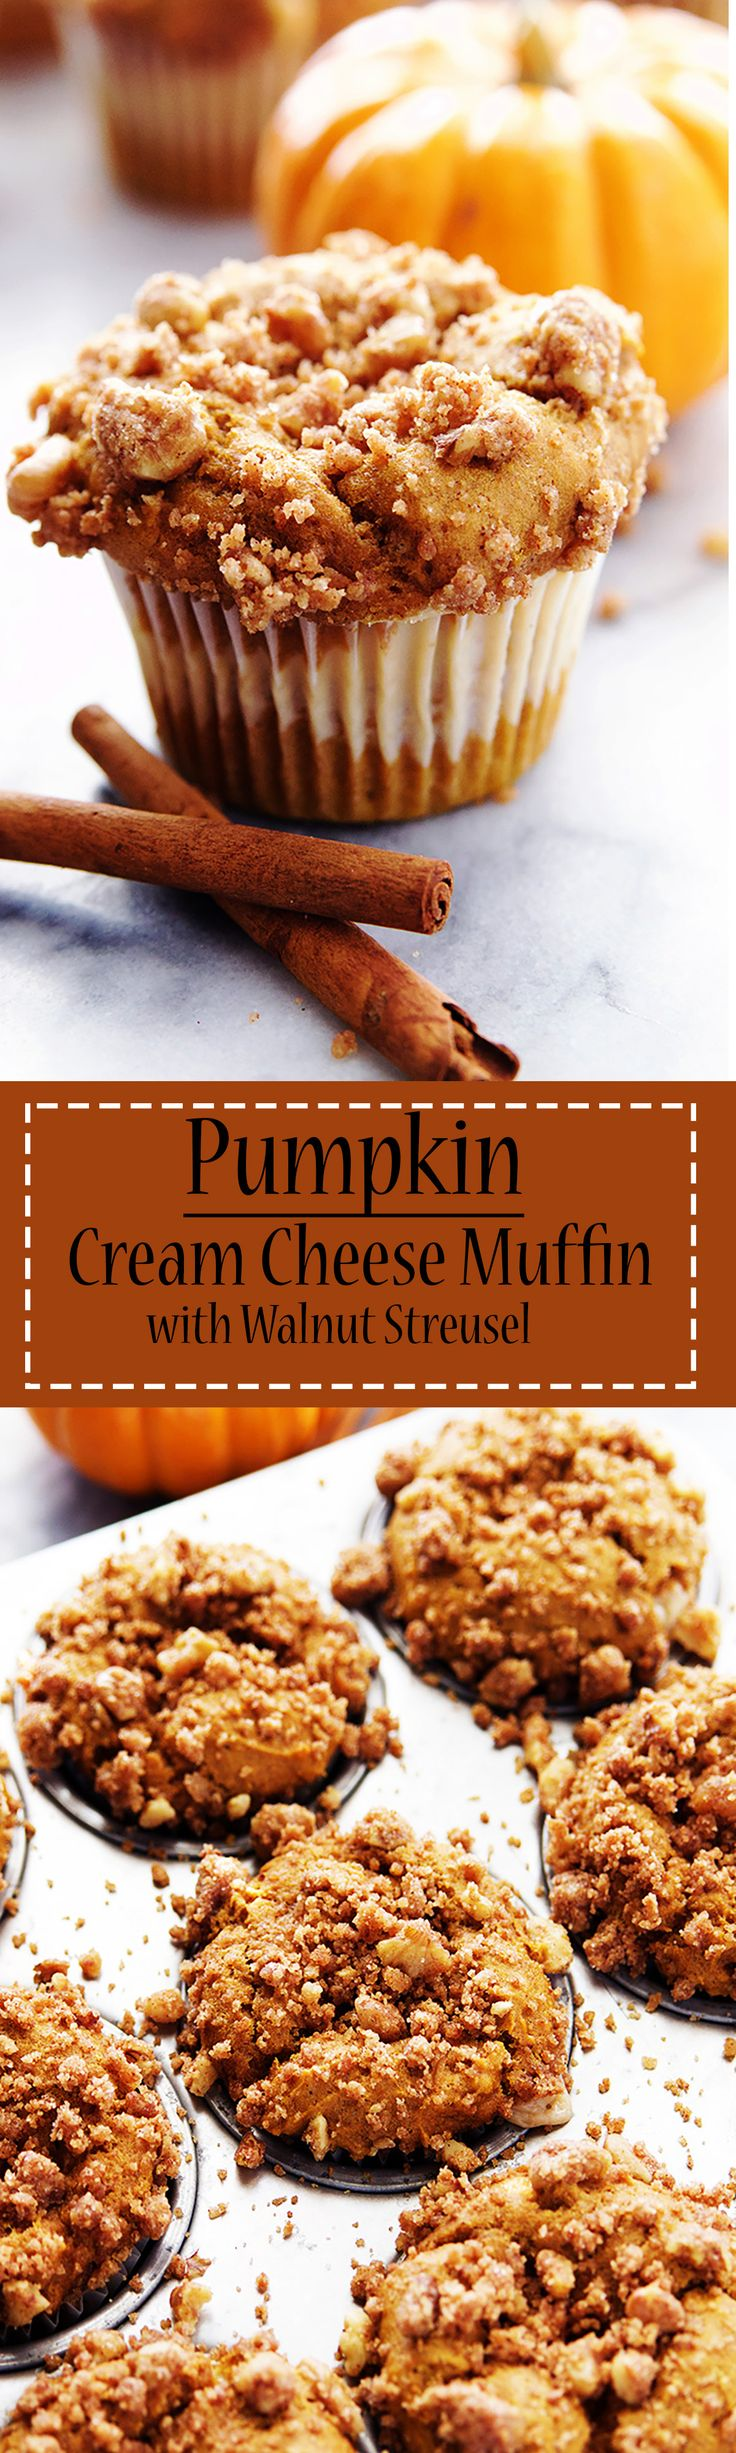 My cup runneth over with pumpkin, with these moist, cakey Pumpkin and Cream Cheese Muffins dusted with warm walnut streusel